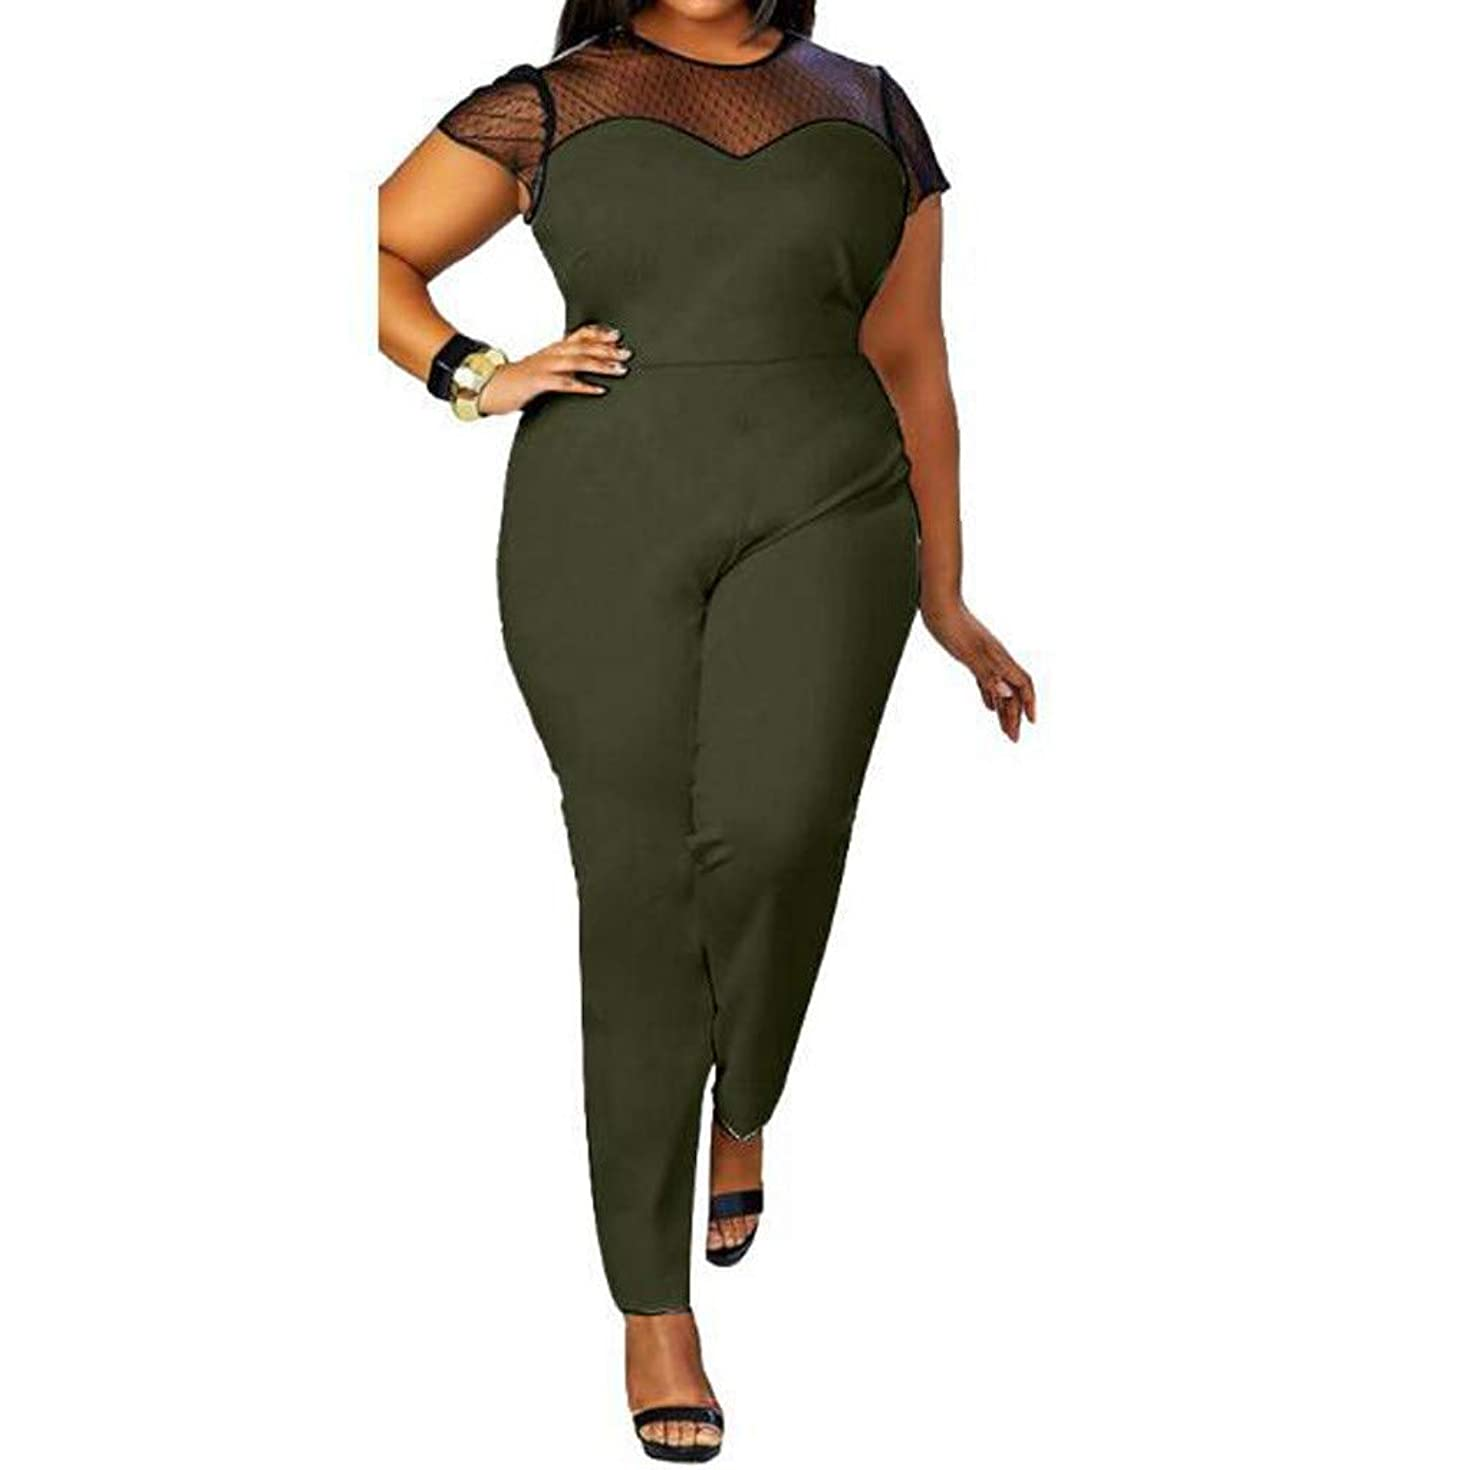 Jumpsuit for Women,Casual Short Sleeve Slim Fit Sexy Mesh Lace Splice Rompers Long Pants